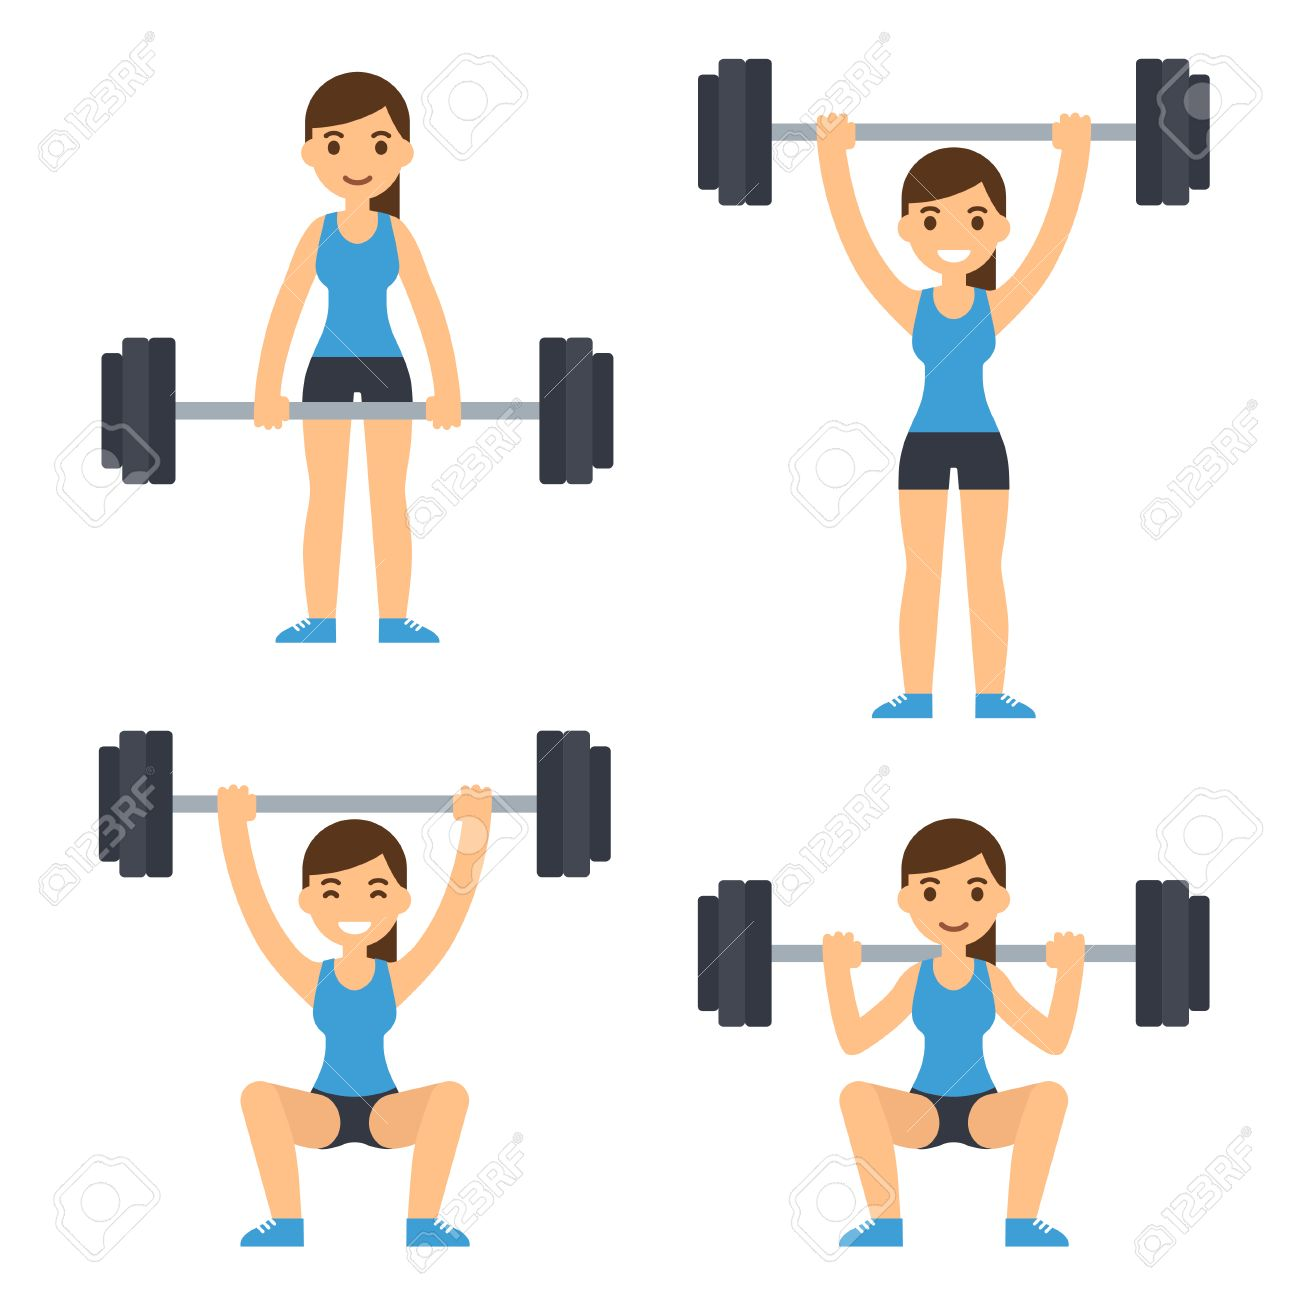 Cartoon Woman Barbell Training Weight Lifting Exercises Squat Royalty Free Cliparts Vectors And Stock Illustration Image 63947753